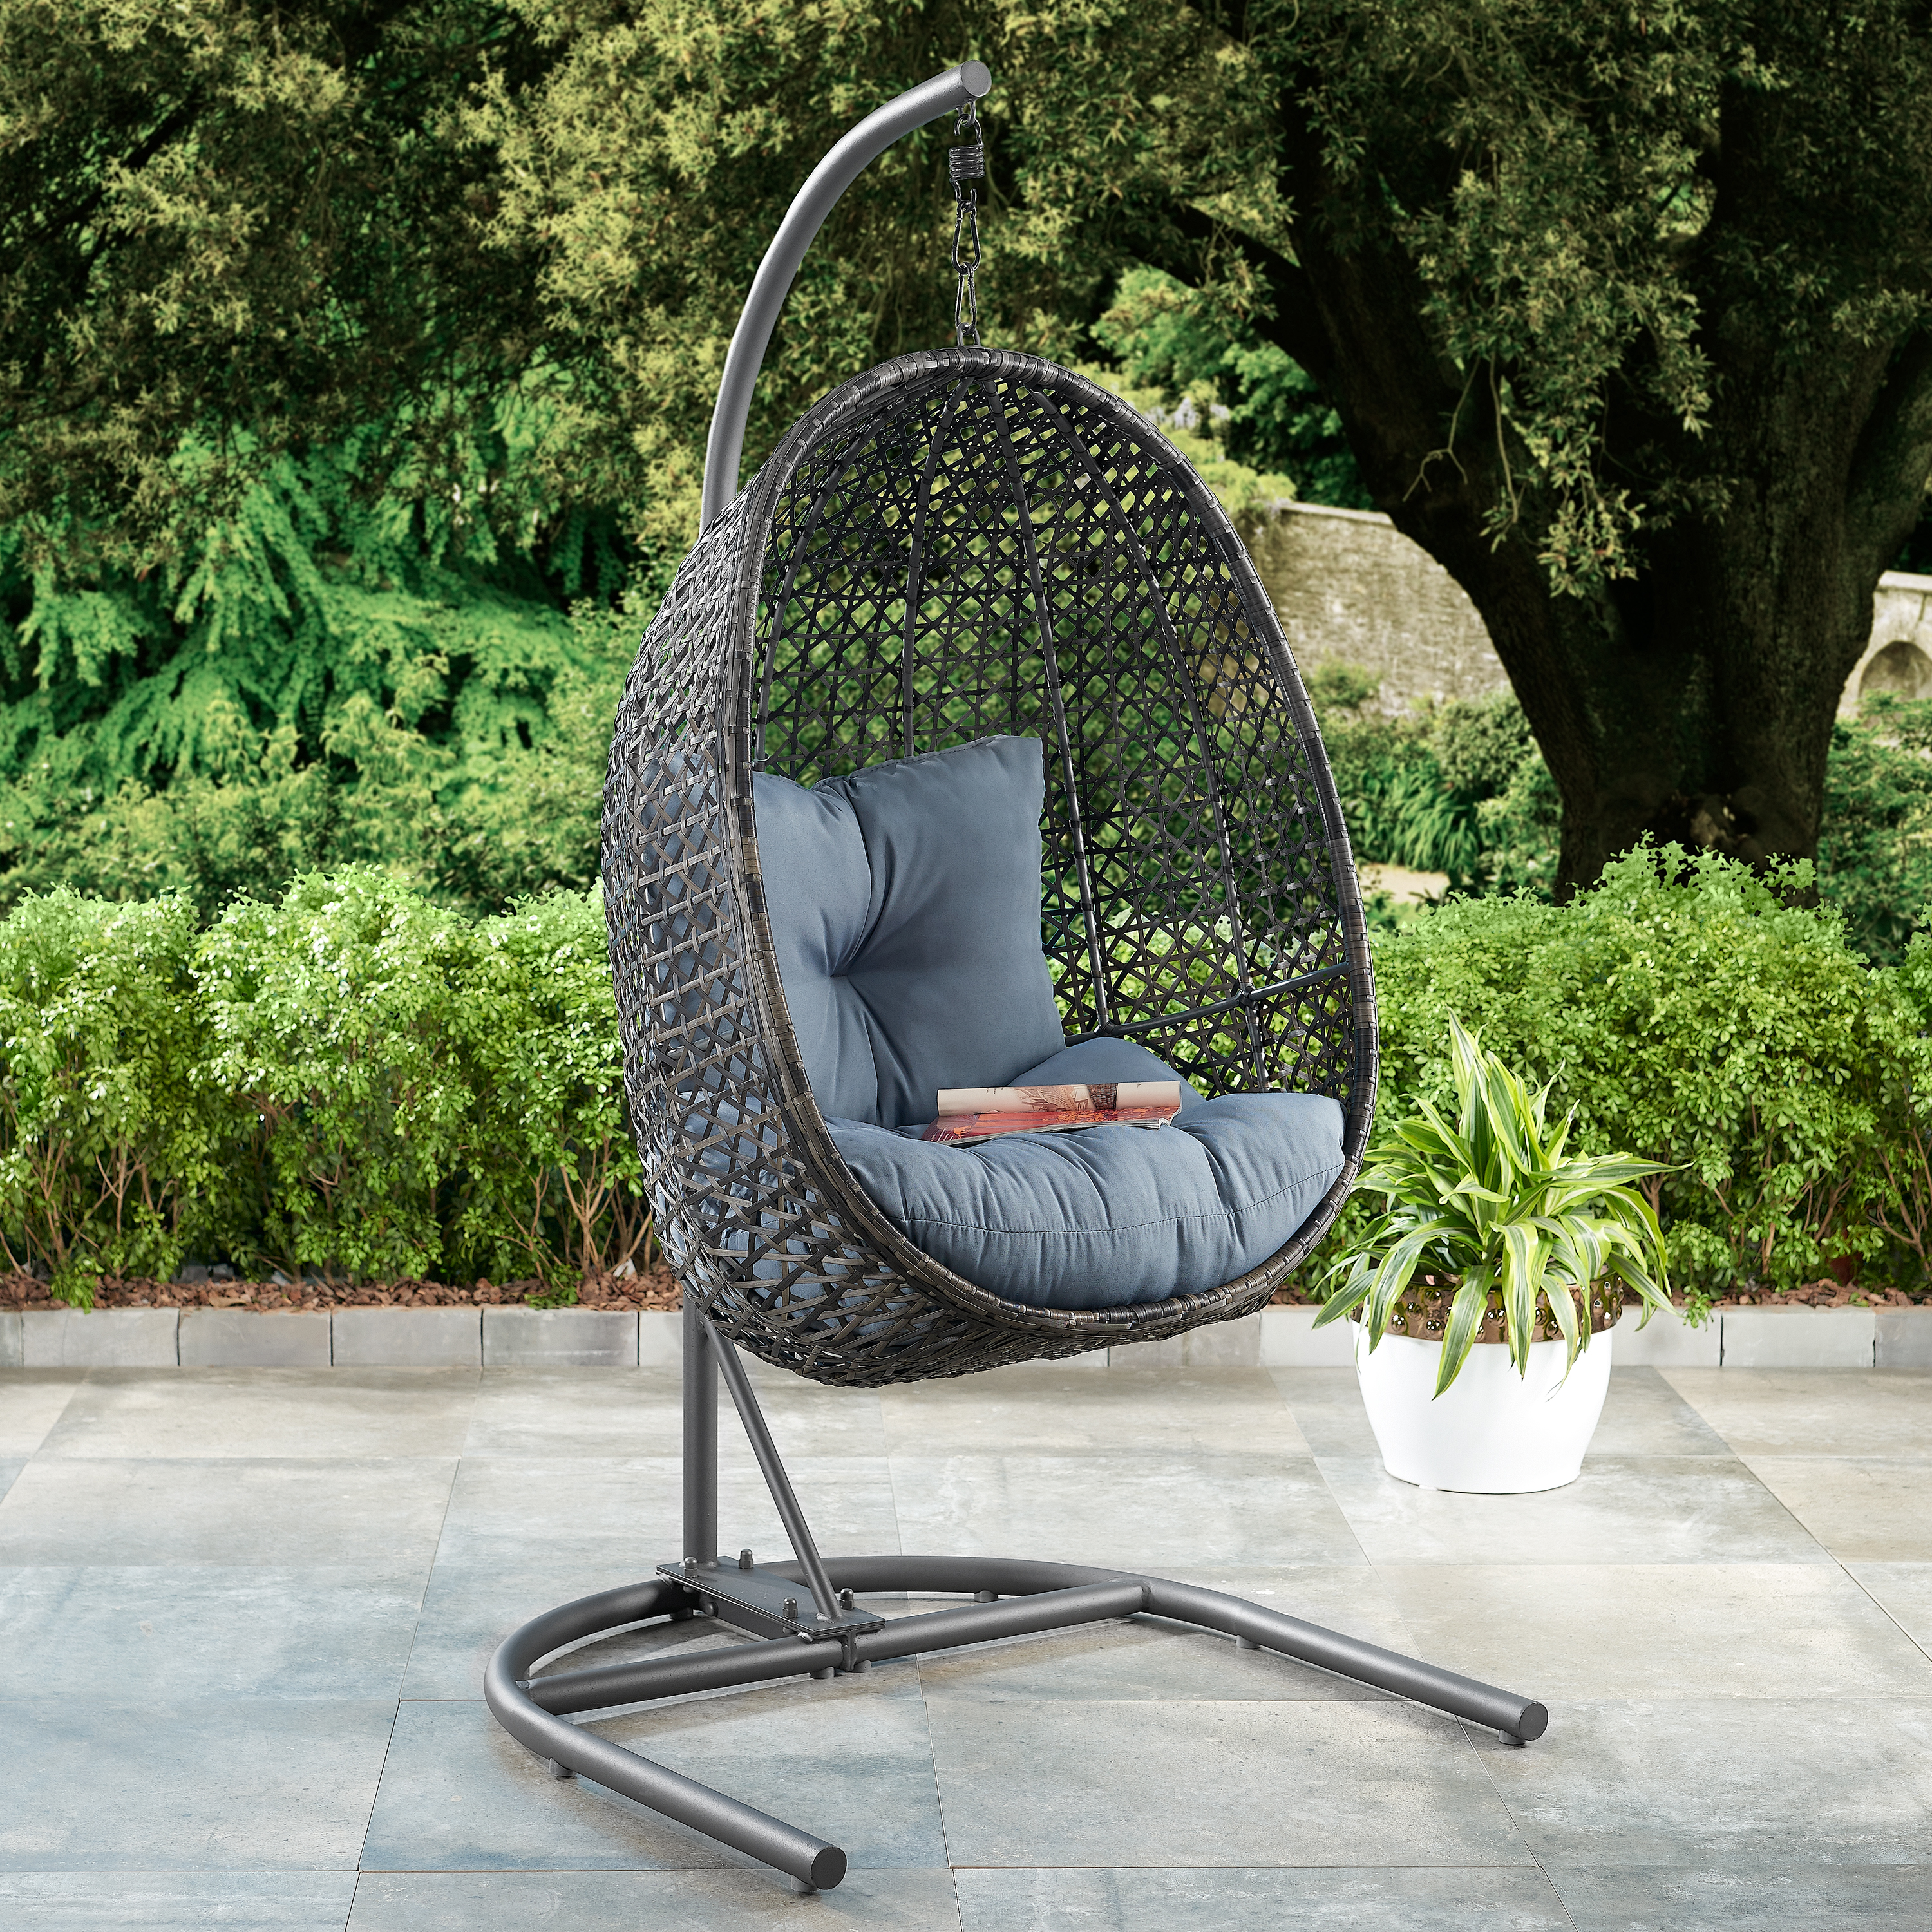 hanging egg chair on patio